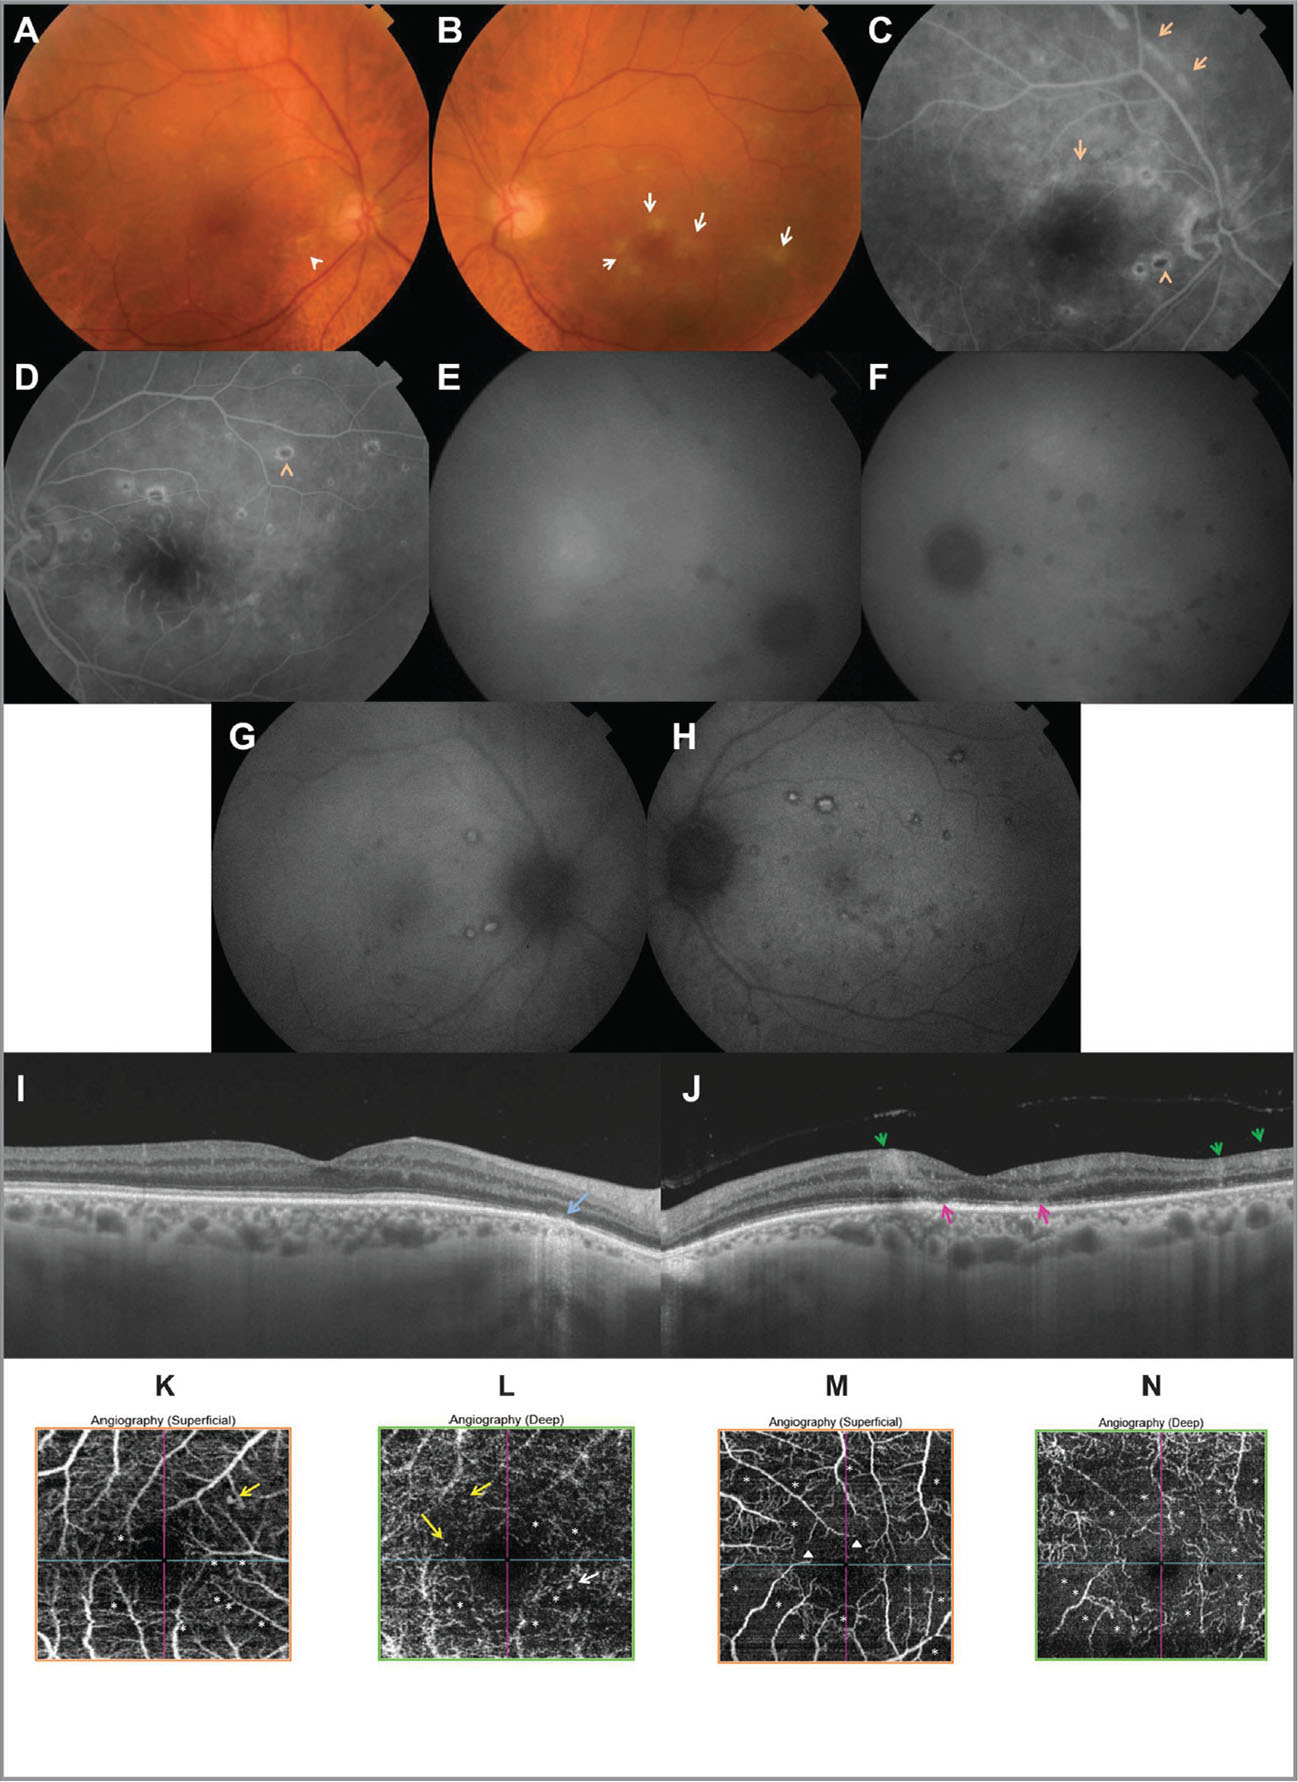 (A, B) Fundus photography shows mild nonproliferative diabetic retinopathy with a few retinal hemorrhages and microaneurysms in both eyes, as well as bilateral multiple round atrophic chorioretinal lesions, with central pigmentation in some of them (arrowhead). There are patchy areas of ischemic retinal whitening with arteriolar narrowing and sheathing in the left eye (B) (arrows). (C, D) Mid-phase fluorescein angiograms show bilateral inactive multifocal chorioretinitis with a target-like appearance (orange arrowheads) and linear clustering of chorioretinal lesions (orange arrows). The perifoveal capillary arcade appears to be slightly disrupted in the right eye (C). In the left eye, there was a marked disruption of the perifoveal capillary arcade with enlarged and irregular foveal avascular zone and diffuse staining and leakage of perifoveal arterioles and venules (D). (E, F) Late-phase indocyanine green angiograms show hypofluorescent choroidal spots with more lesions than those appreciated clinically or by fluorescein angiography. (G, H) Fundus autofluorescence shows multiple well-delineated, uniformly hypoautofluorescent or centrally hyperautofluorescent and peripherally hypoautofluorescent spots. (I) Spectral-domain optical coherence tomography (OCT) of the right eye showed focal involvement of the outer retina and retinal pigment epithelium corresponding to a focus of chorioretinitis (blue arrow). In the left eye, there are paracentral focal hyperreflective lesions extending from the inner limiting membrane to the outer plexiform layer corresponding to the patchy areas of ischemic retinal whitening seen clinically (green arrows), and focal alterations of the outer retina (pink arrows) (J). Swept-source OCT angiogram of the right eye shows multiple small, hypointense nonperfusion areas (asterisks) and a few microaneurysms (yellow arrows) and telangiectatic vessels involving both the superficial (K) and deep (L) capillary plexuses. OCT angiogram of the left eye shows extensive well-delineated, hypointense nonperfusion areas (asterisks) and perifoveal capillary arcade disruption (white triangles) in the superficial capillary plexus (M) and larger nonperfusion areas (asterisks), capillary rarefaction, and diffuse capillary network attenuation and disorganization in the deep capillary plexus, with a significant degree of projection artifact from the superficial capillary plexus (N).